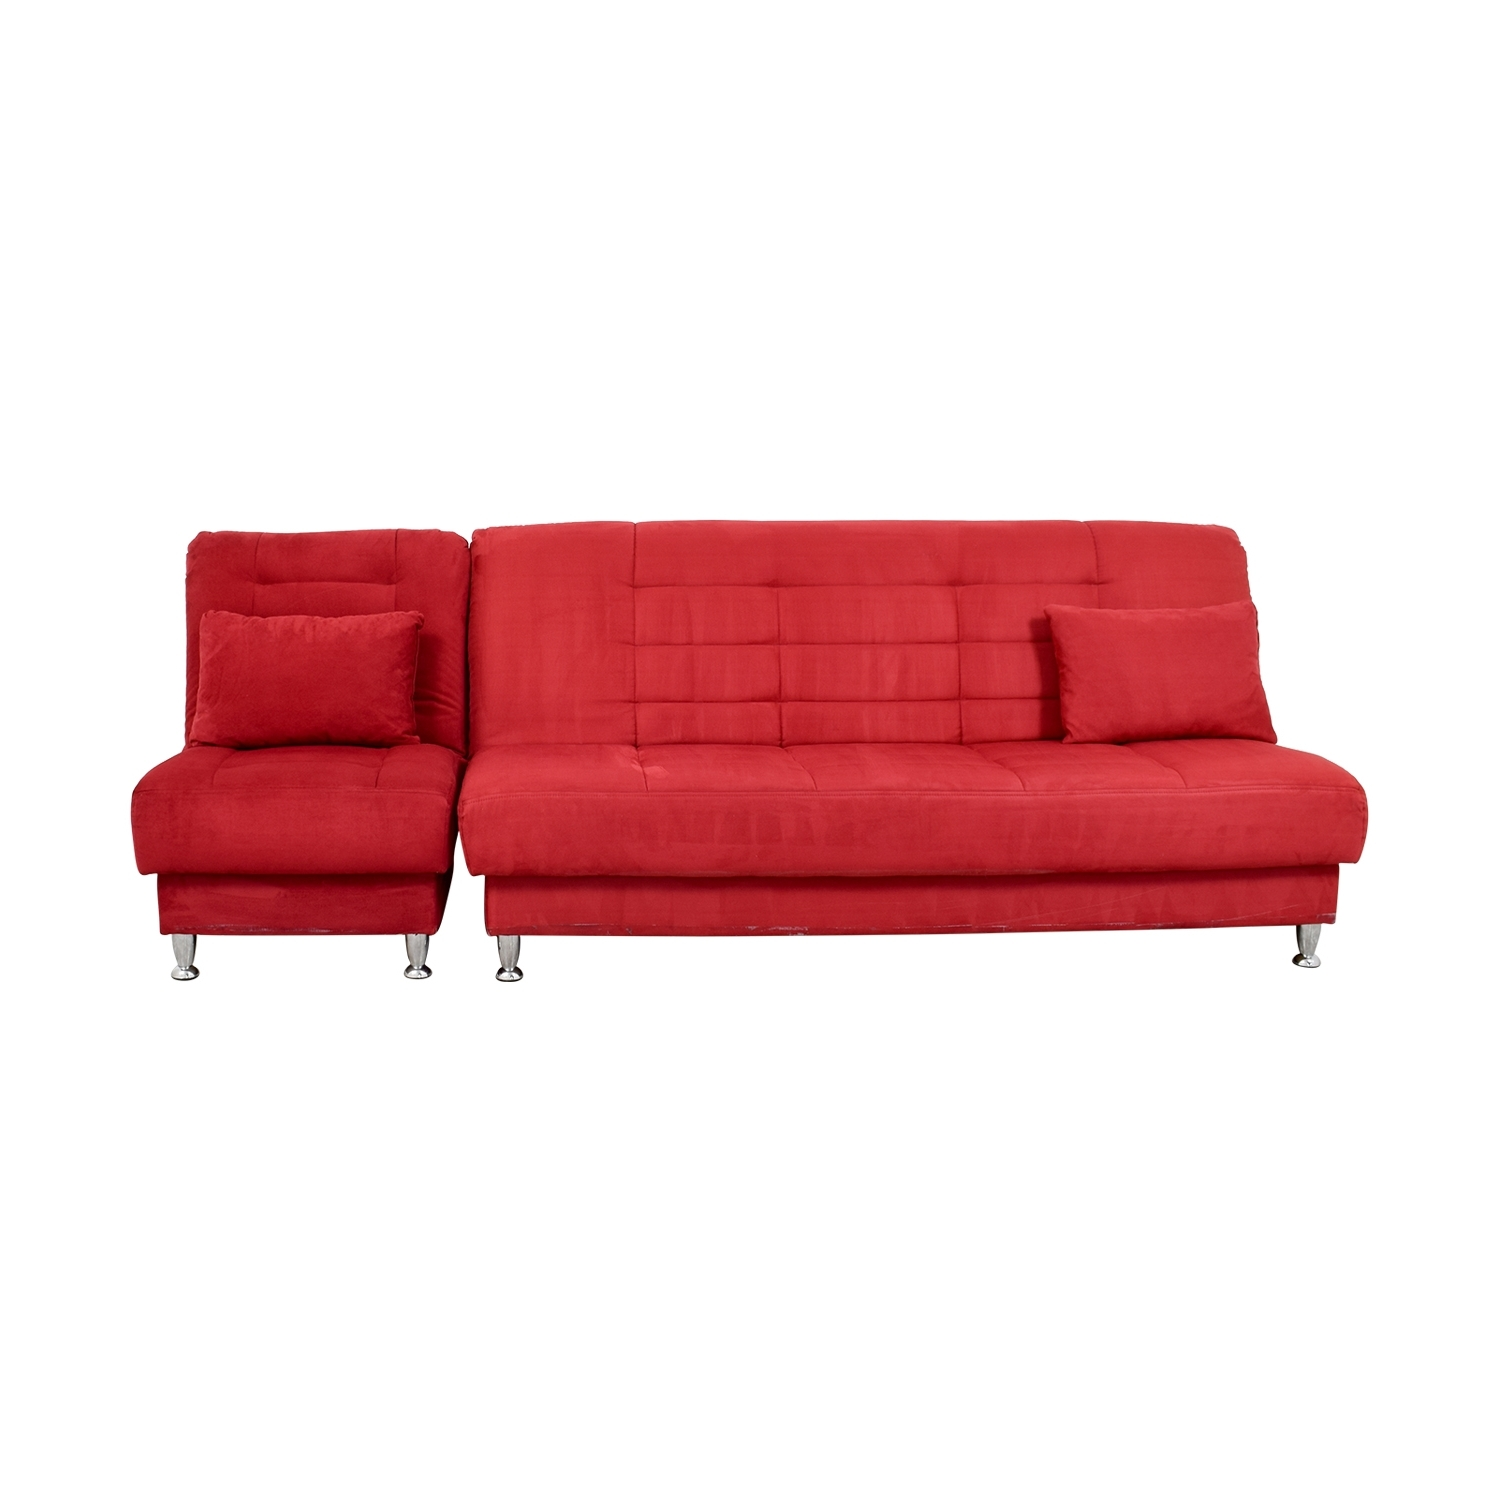 [%79% Off – Latitude Latitude Red Sofa Bed With Storage / Sofas With Best And Newest Chaises With Storage|Chaises With Storage With Famous 79% Off – Latitude Latitude Red Sofa Bed With Storage / Sofas|Well Liked Chaises With Storage With Regard To 79% Off – Latitude Latitude Red Sofa Bed With Storage / Sofas|Well Known 79% Off – Latitude Latitude Red Sofa Bed With Storage / Sofas Intended For Chaises With Storage%] (View 1 of 15)